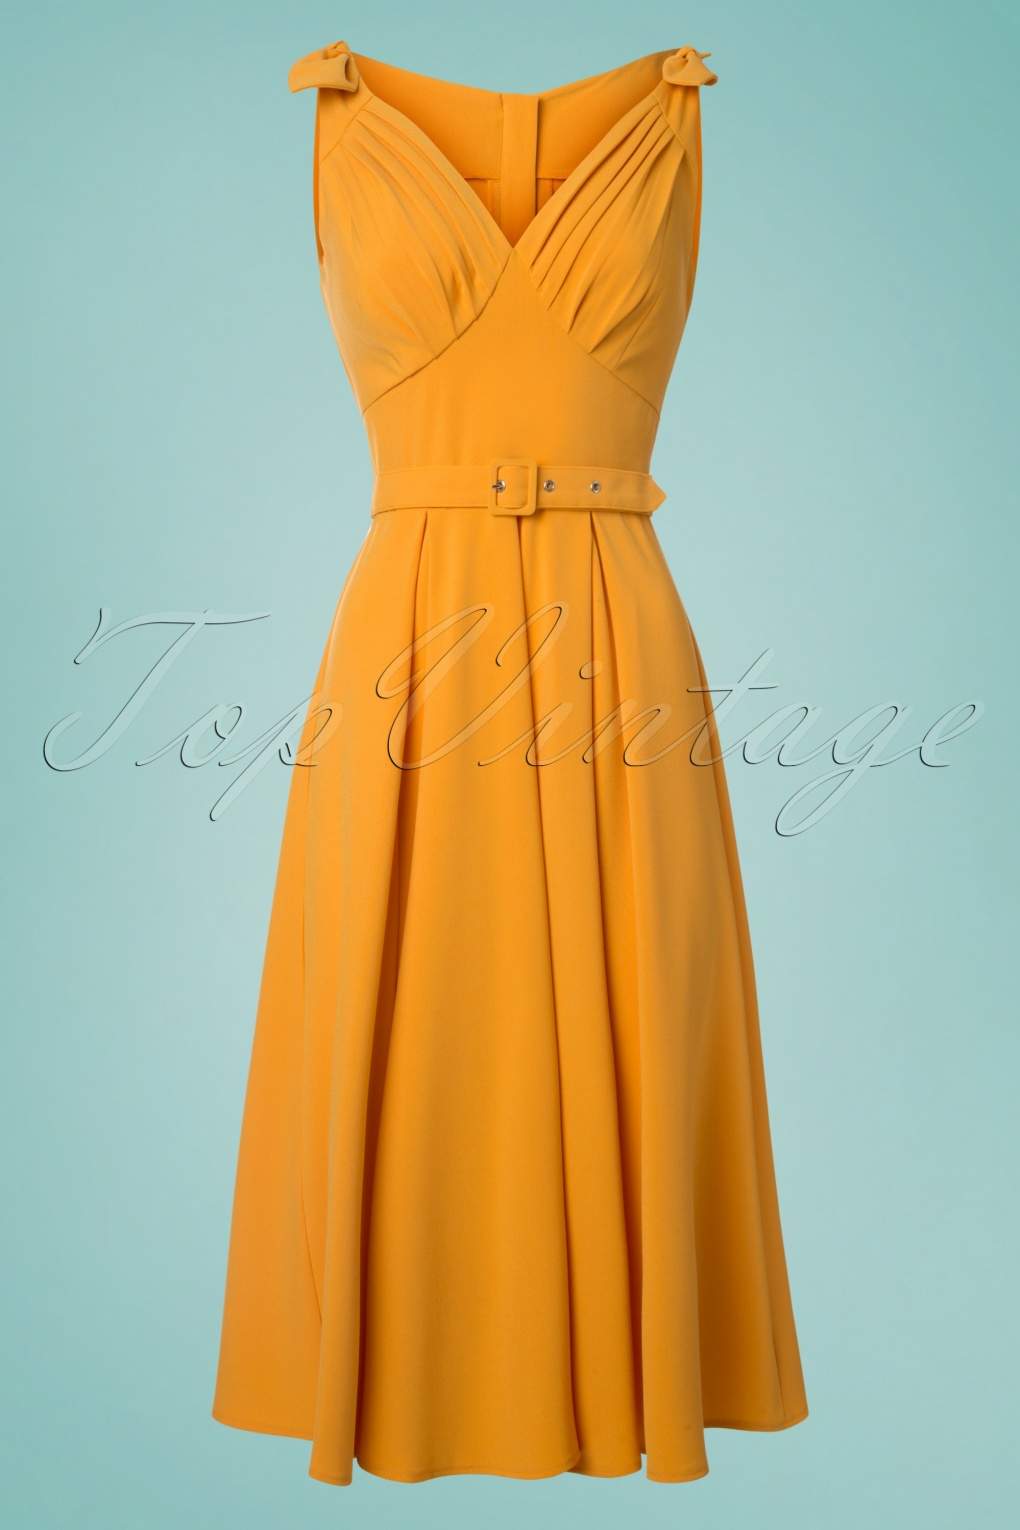 500 Vintage Style Dresses for Sale 50s Marissa Lee Bow Swing Dress in Sun Yellow £89.65 AT vintagedancer.com